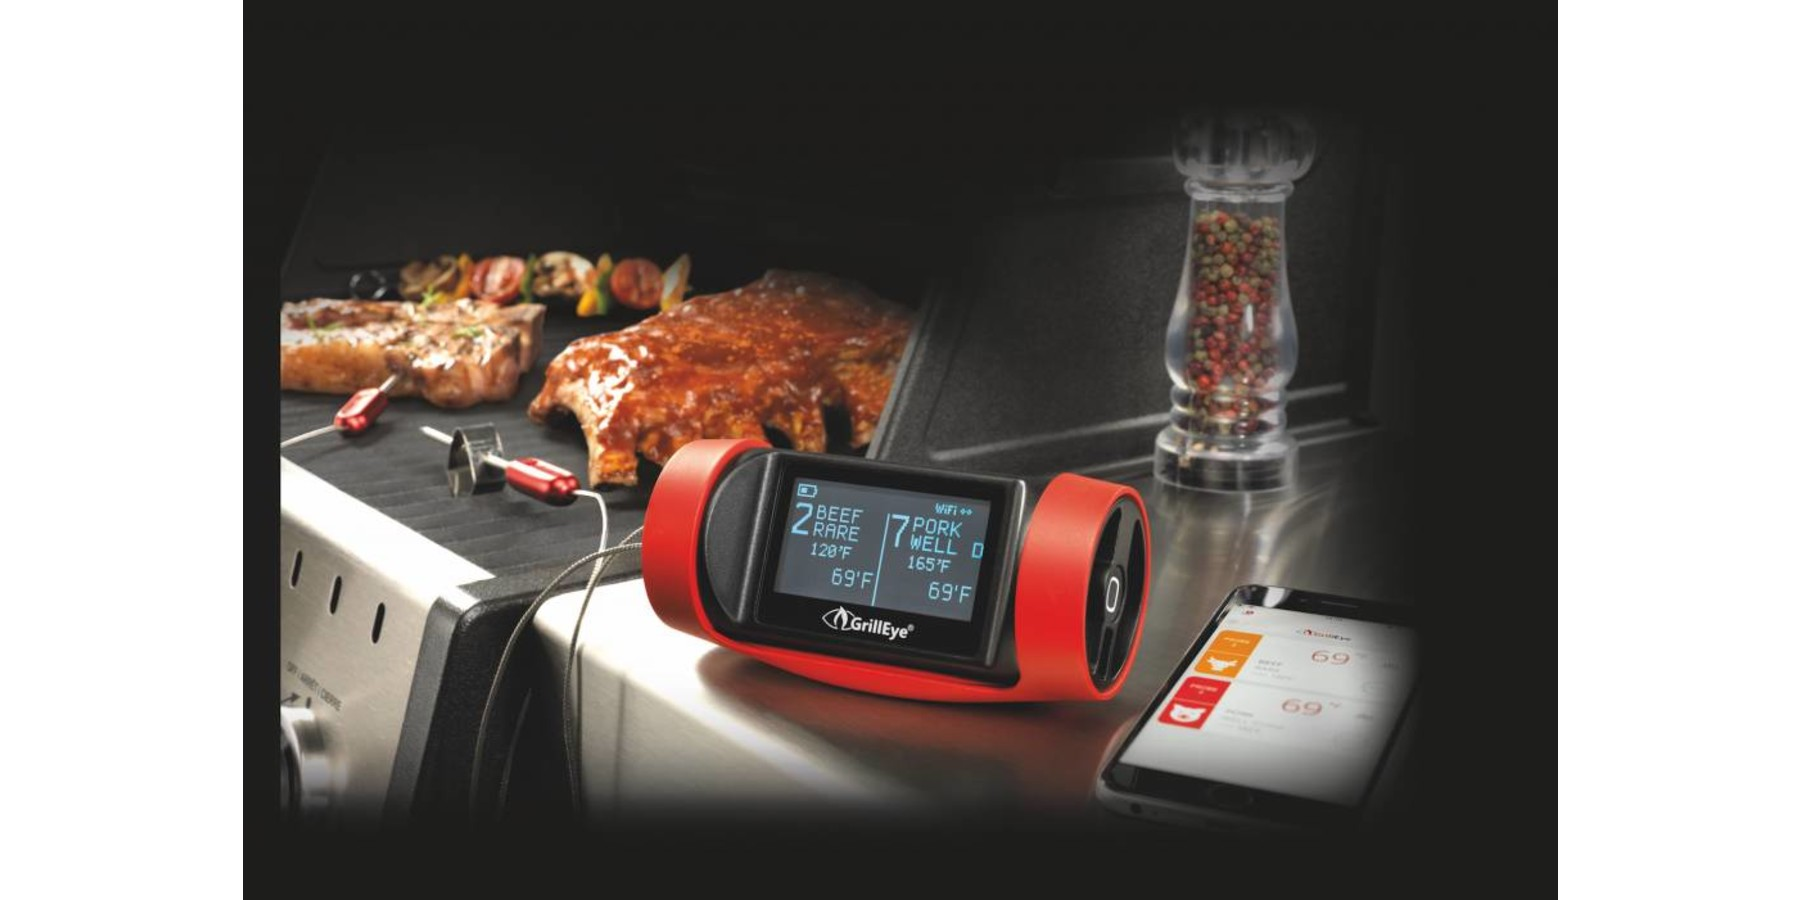 Pro +  bluetooth/wifi vlees -en bbq thermometer